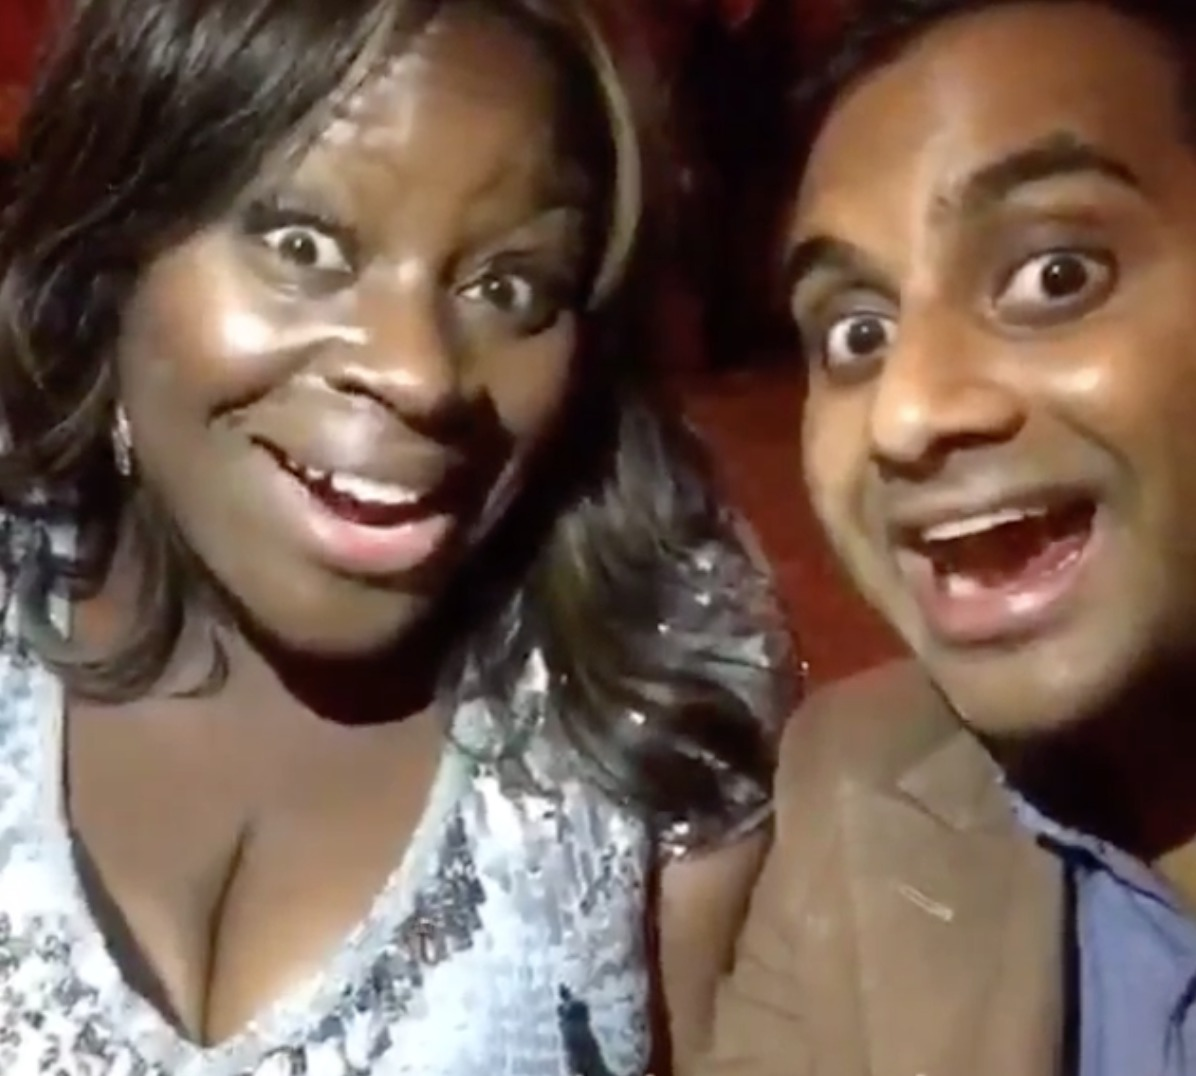 Picture of Tom and Donna Treat Yo Self Reunion Dubsmash